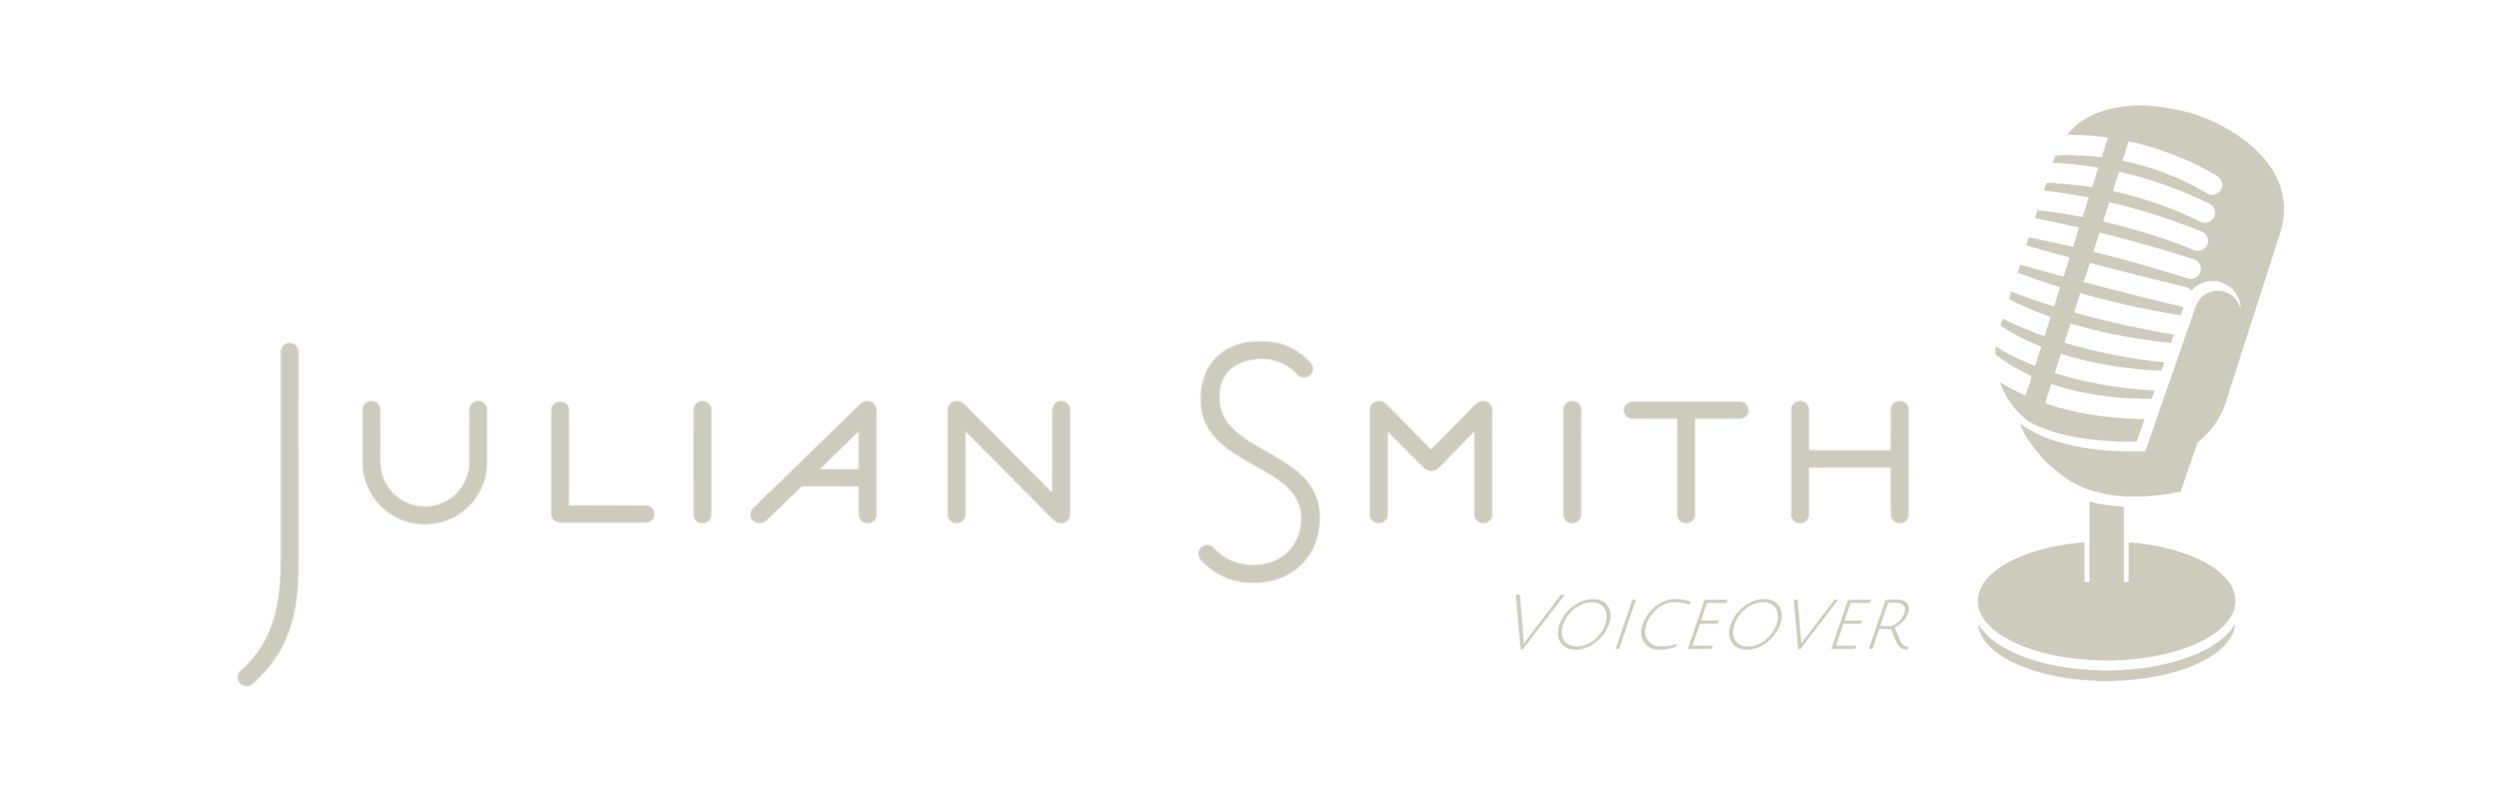 JULIAN SMITH VOICEOVER